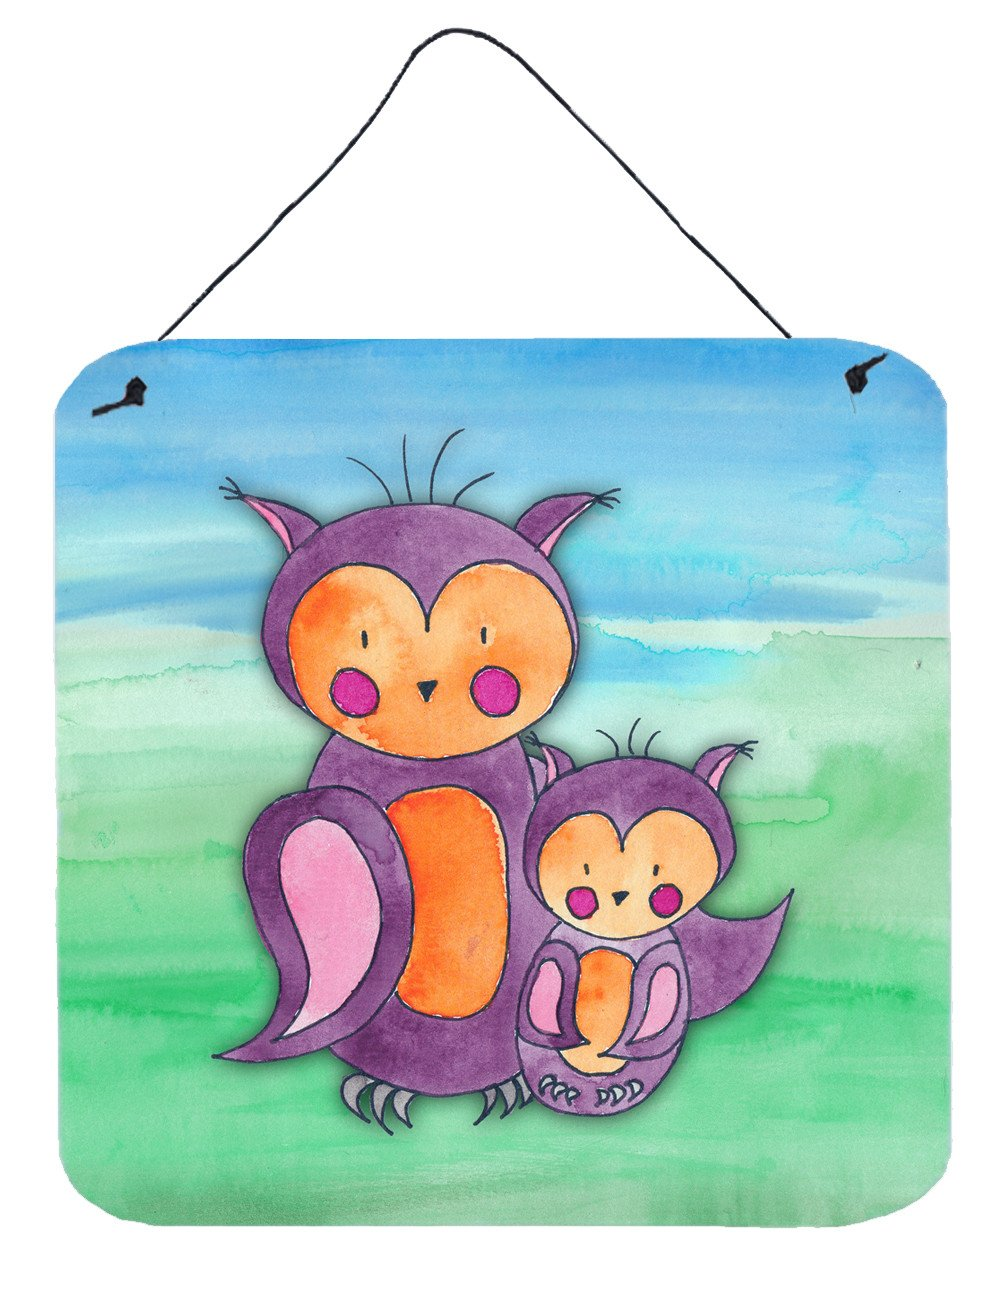 Momma and Baby Owl Watercolor Wall or Door Hanging Prints BB7430DS66 by Caroline's Treasures